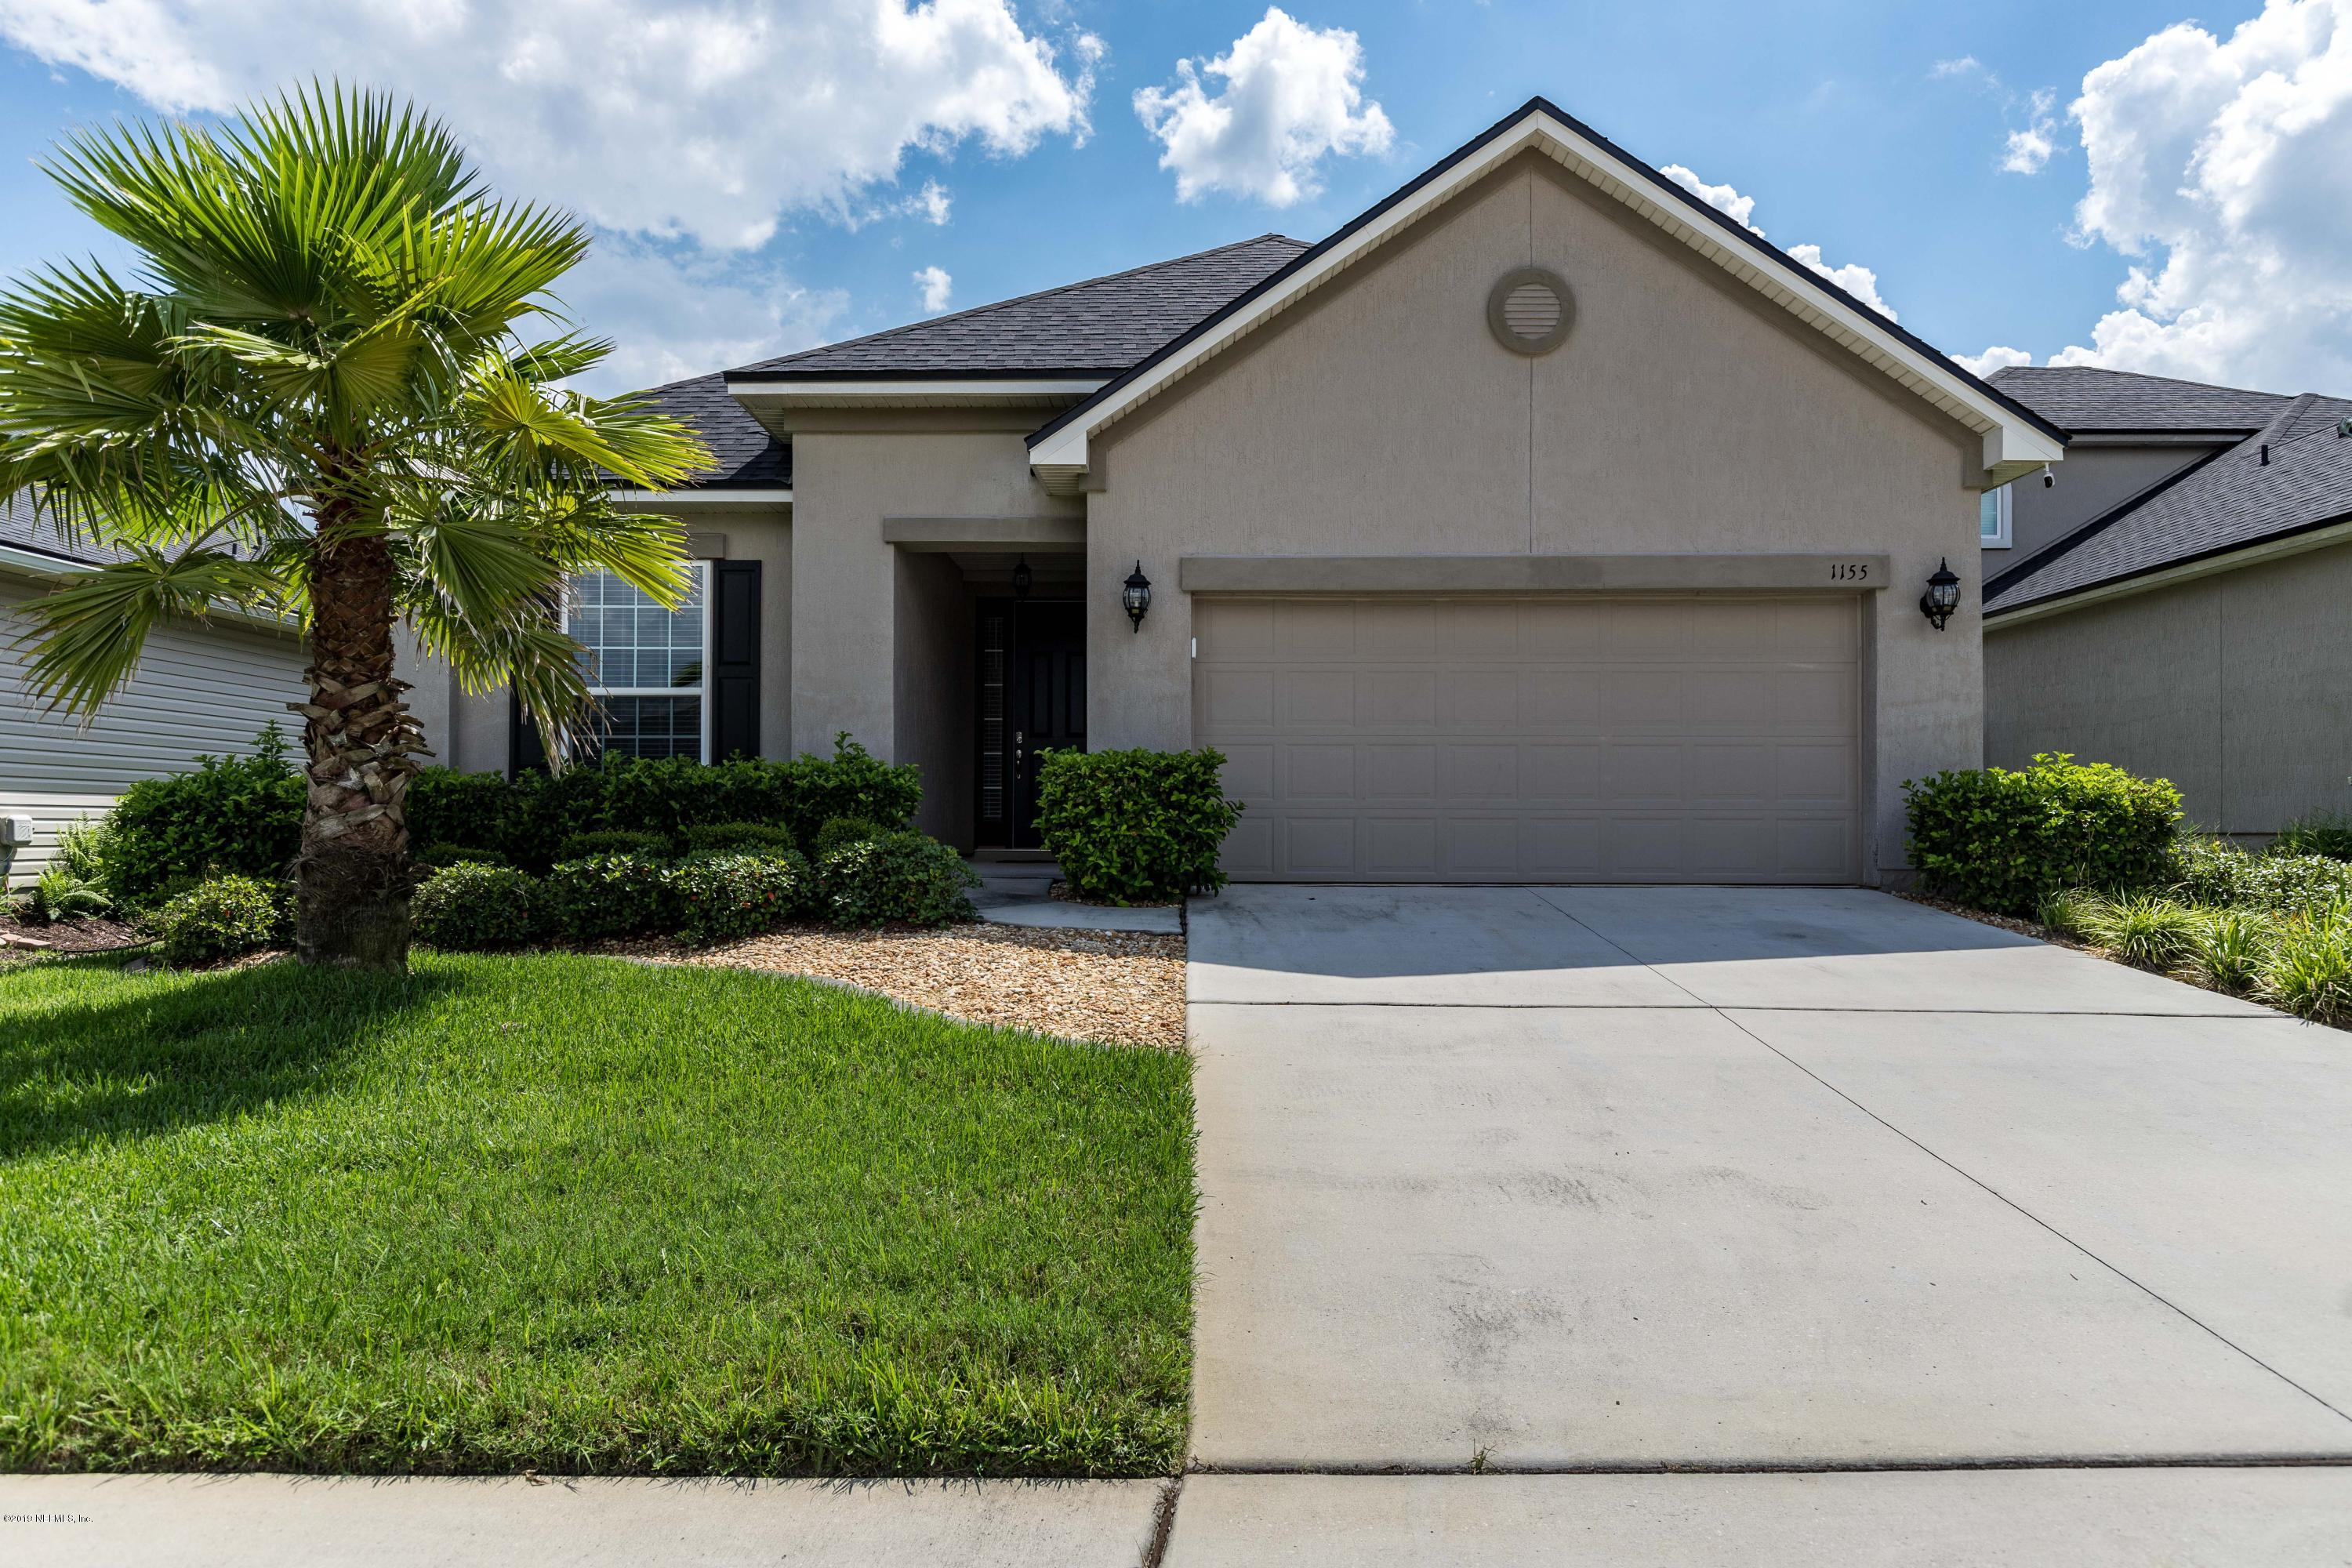 1155 Wetland Ridge Cir